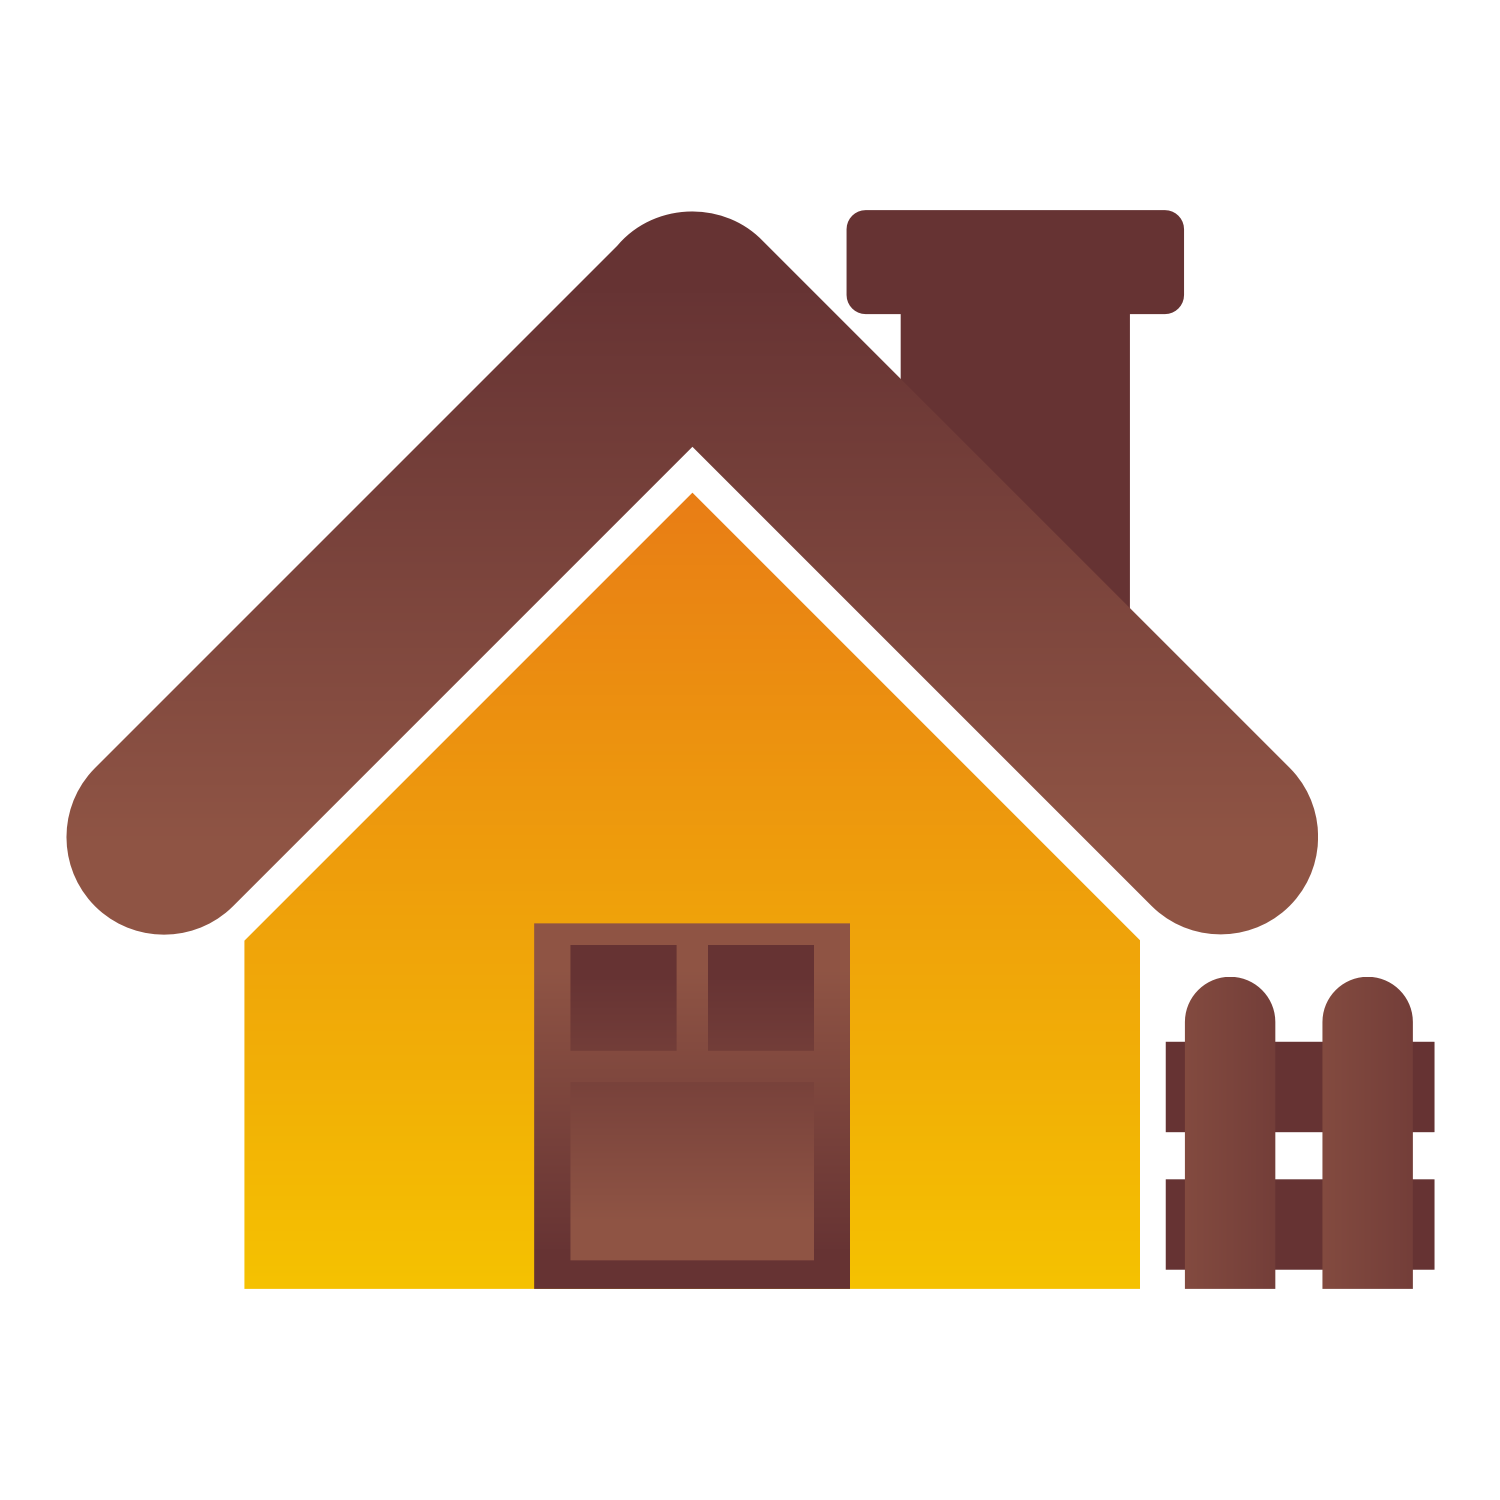 Cute house icon. Vector illustration.